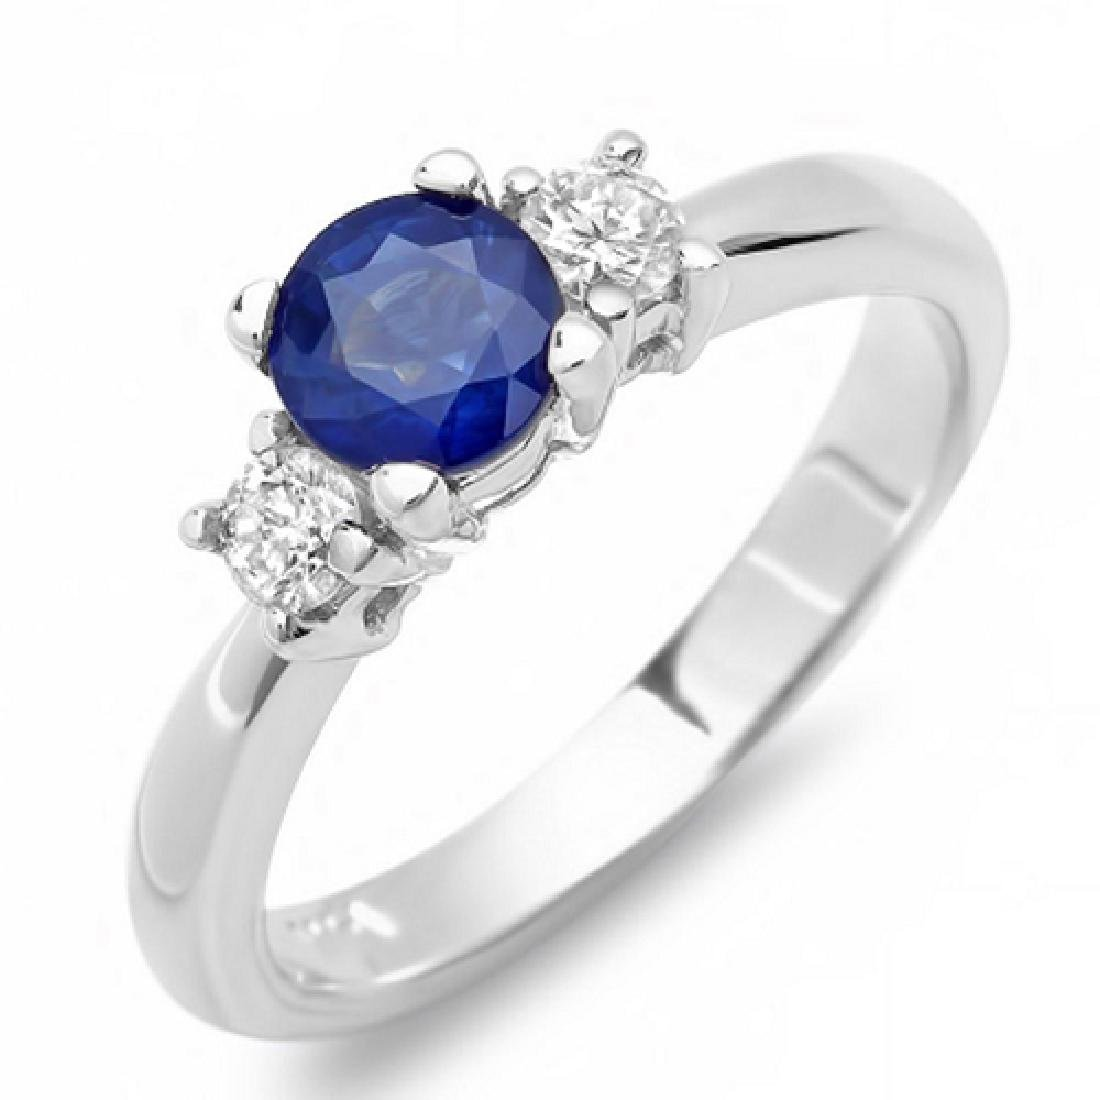 1.18 Carat Natural Sapphire 18K Solid White Gold